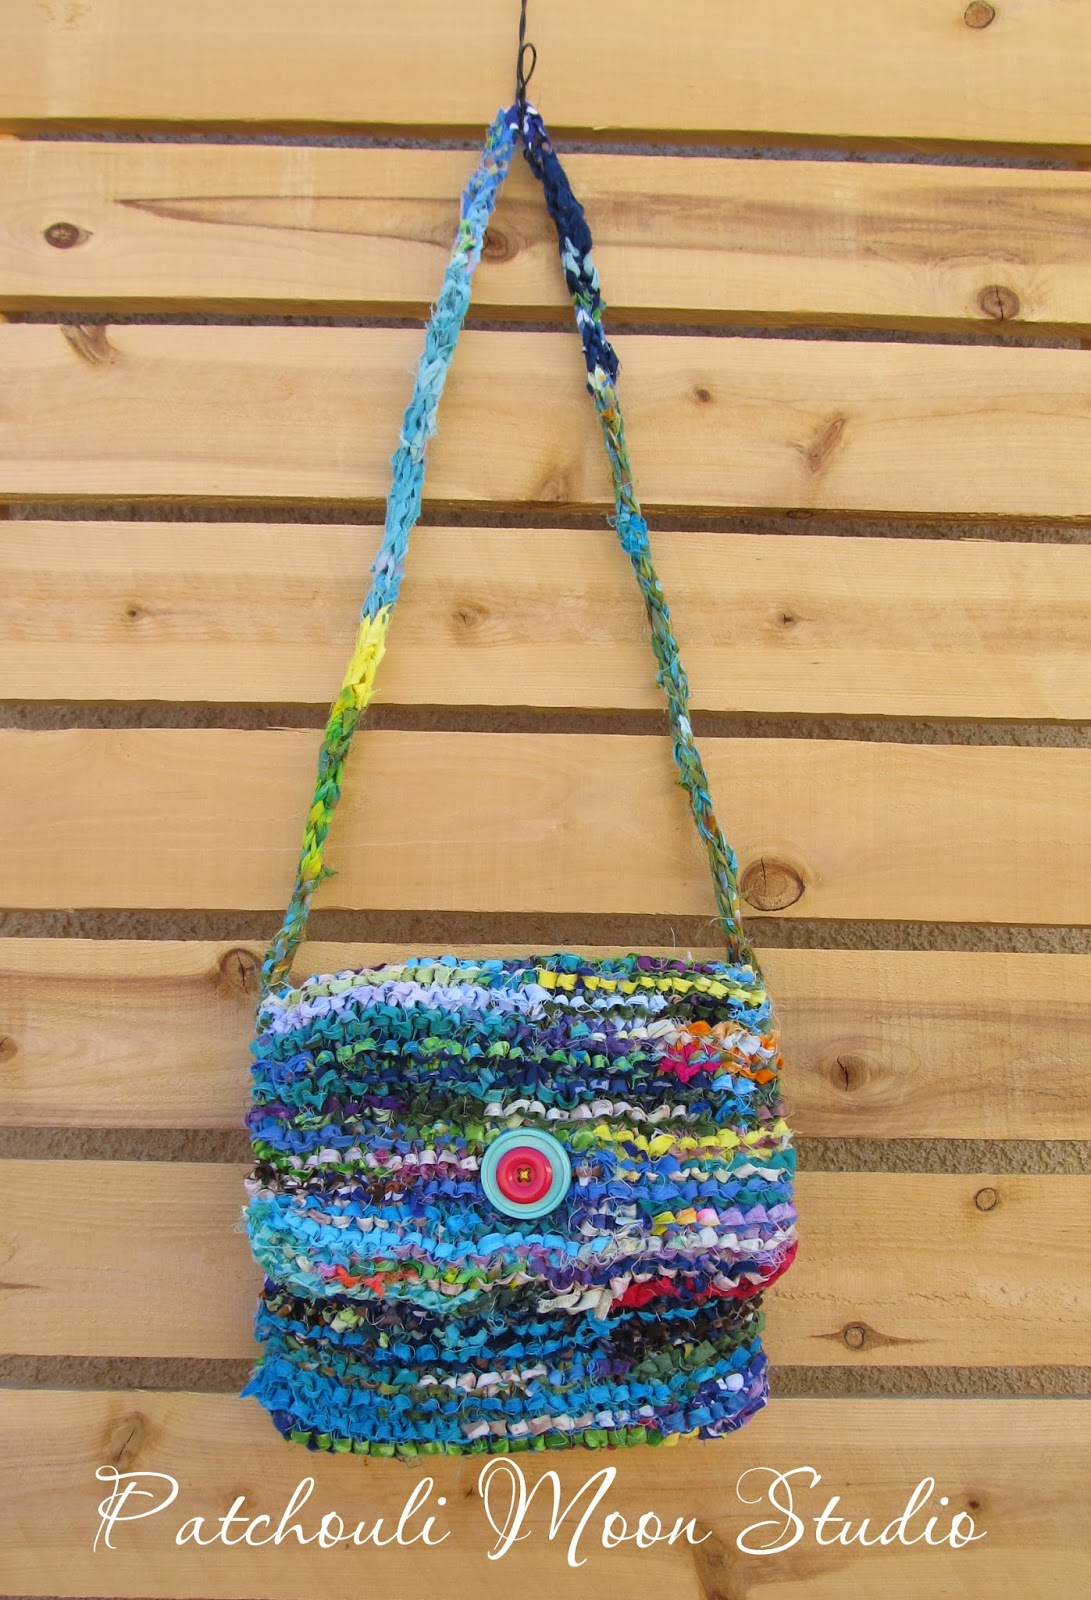 Patchouli Moon Studio: Small Batik Fabric Knit Bag